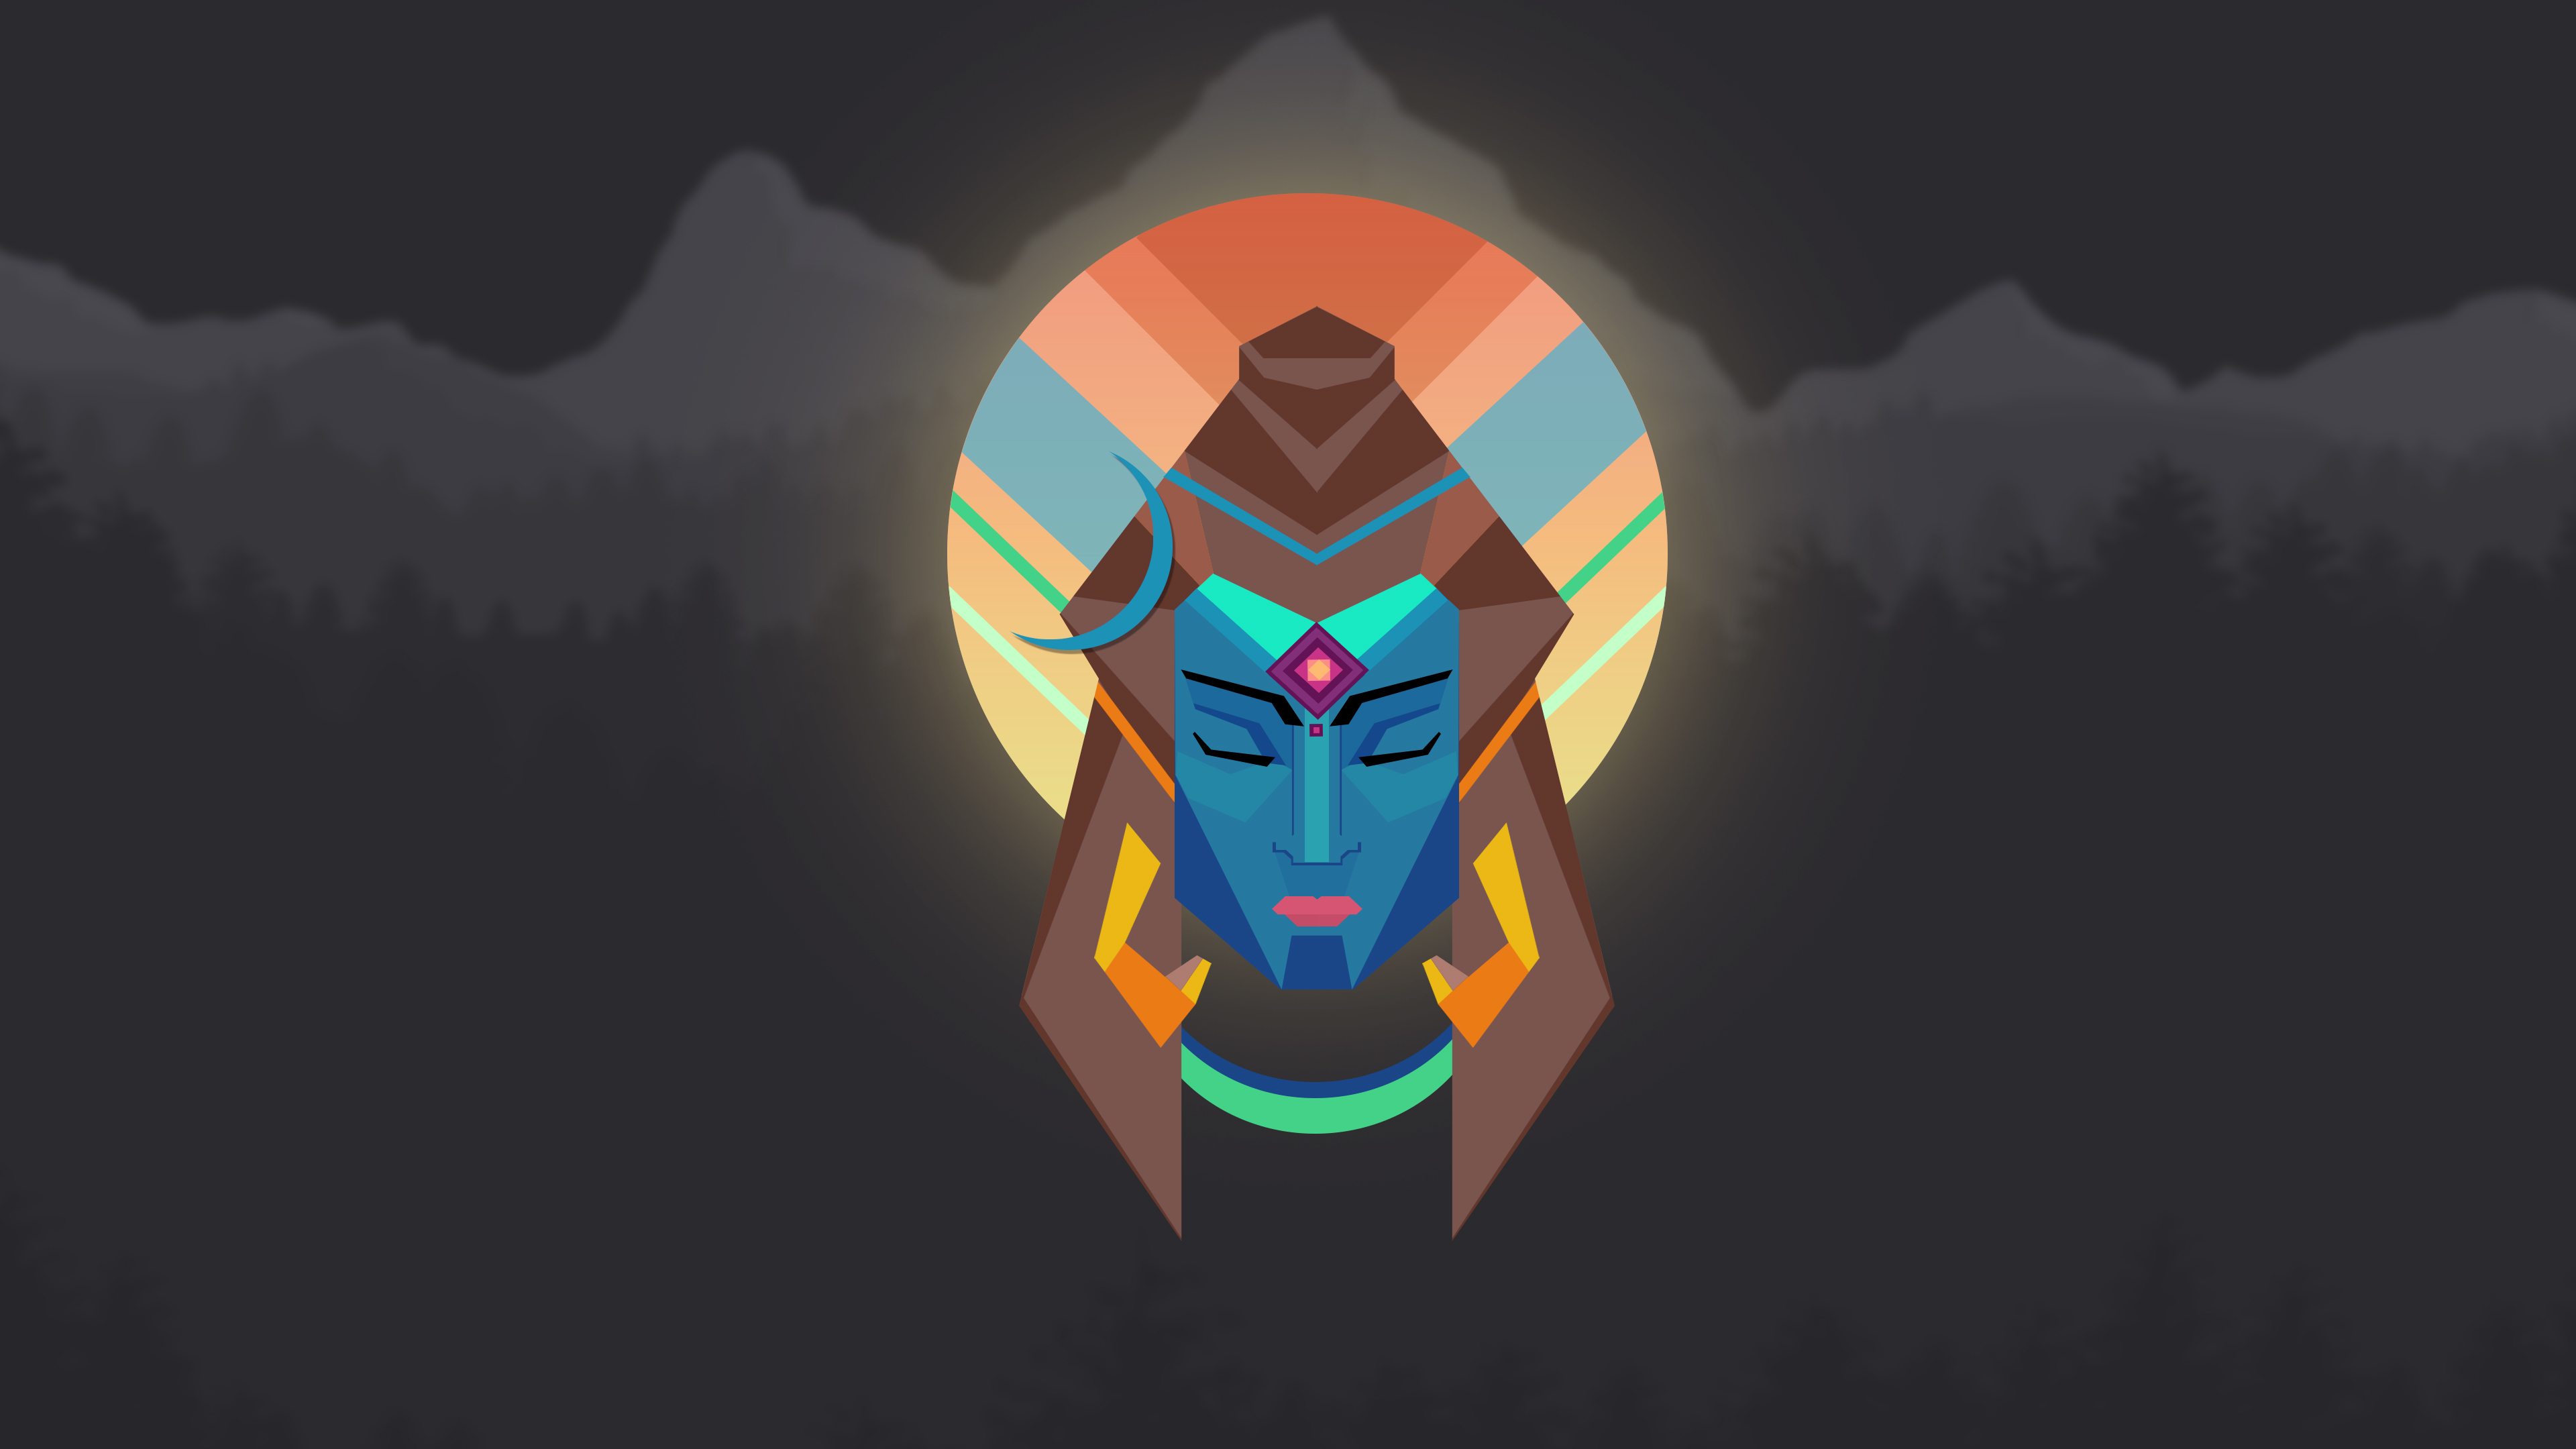 Good Wallpaper High Resolution Lord Shiva - God-shiva-cartoon-wallpapers50  Graphic_346493.jpg